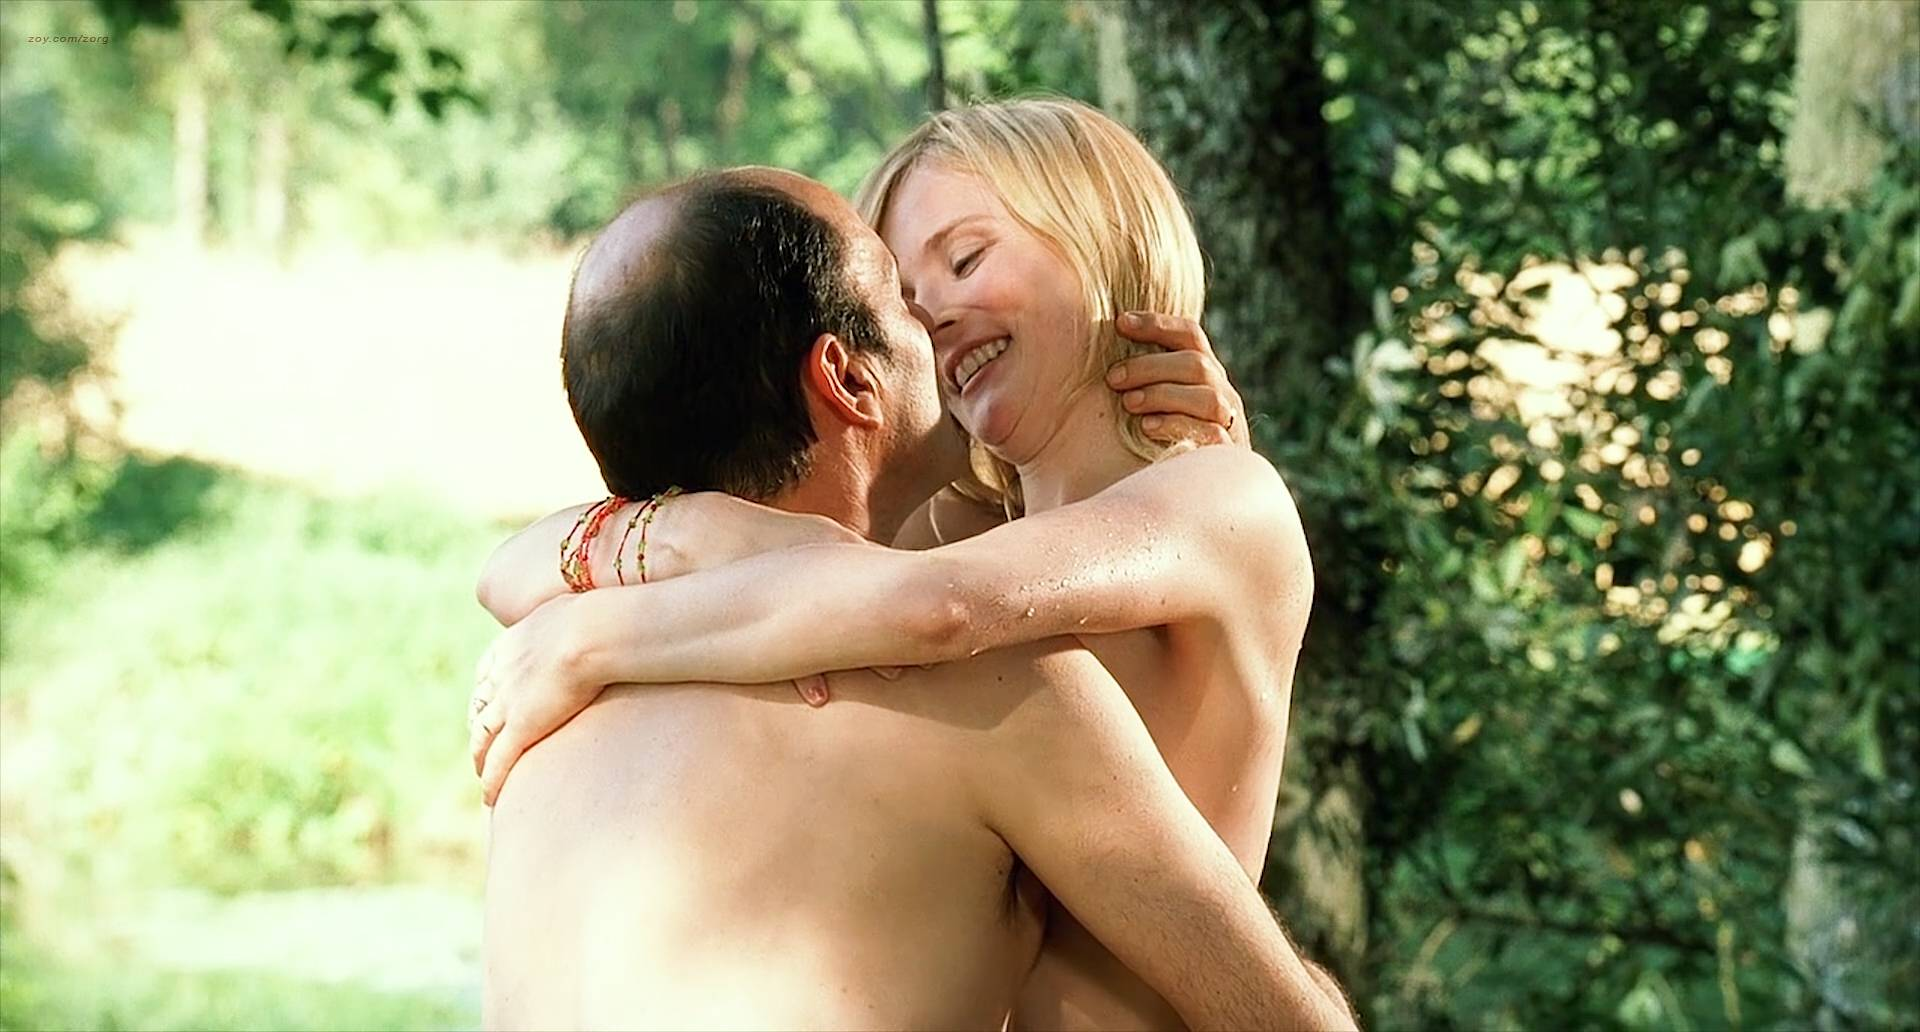 Isabelle Carré nude full frontal and skinny dipping - Les Sentiments (2003) hd1080p BluRay (4)